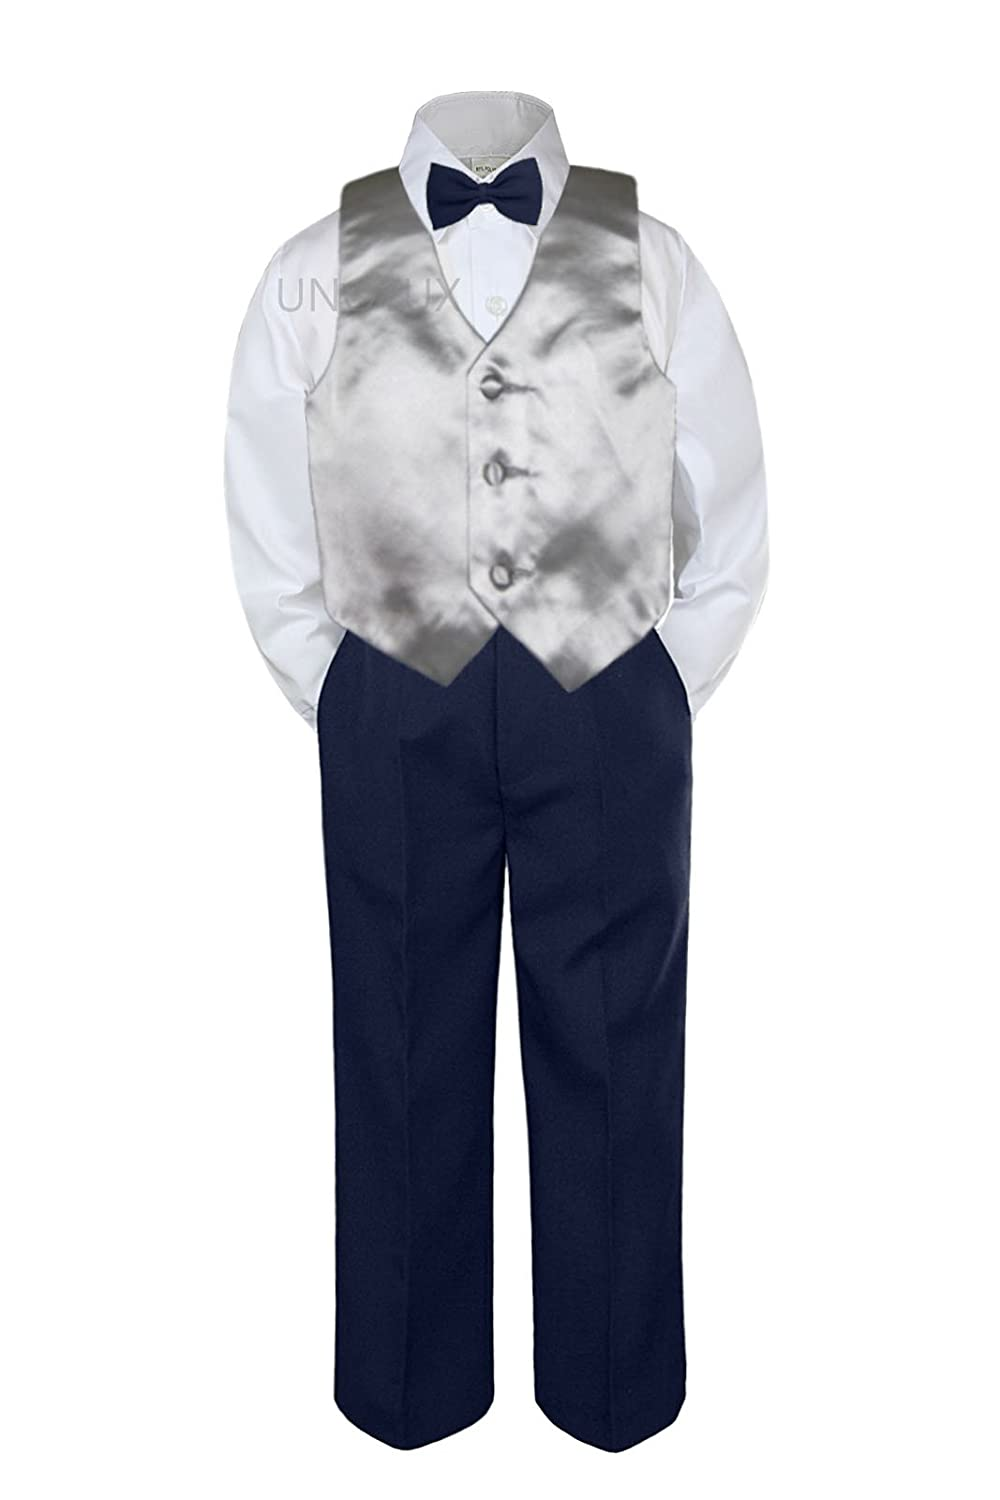 4pc Baby Toddler Kid Boys Silver Vest Navy Blue Pants Bow Tie Suits Set (3T)